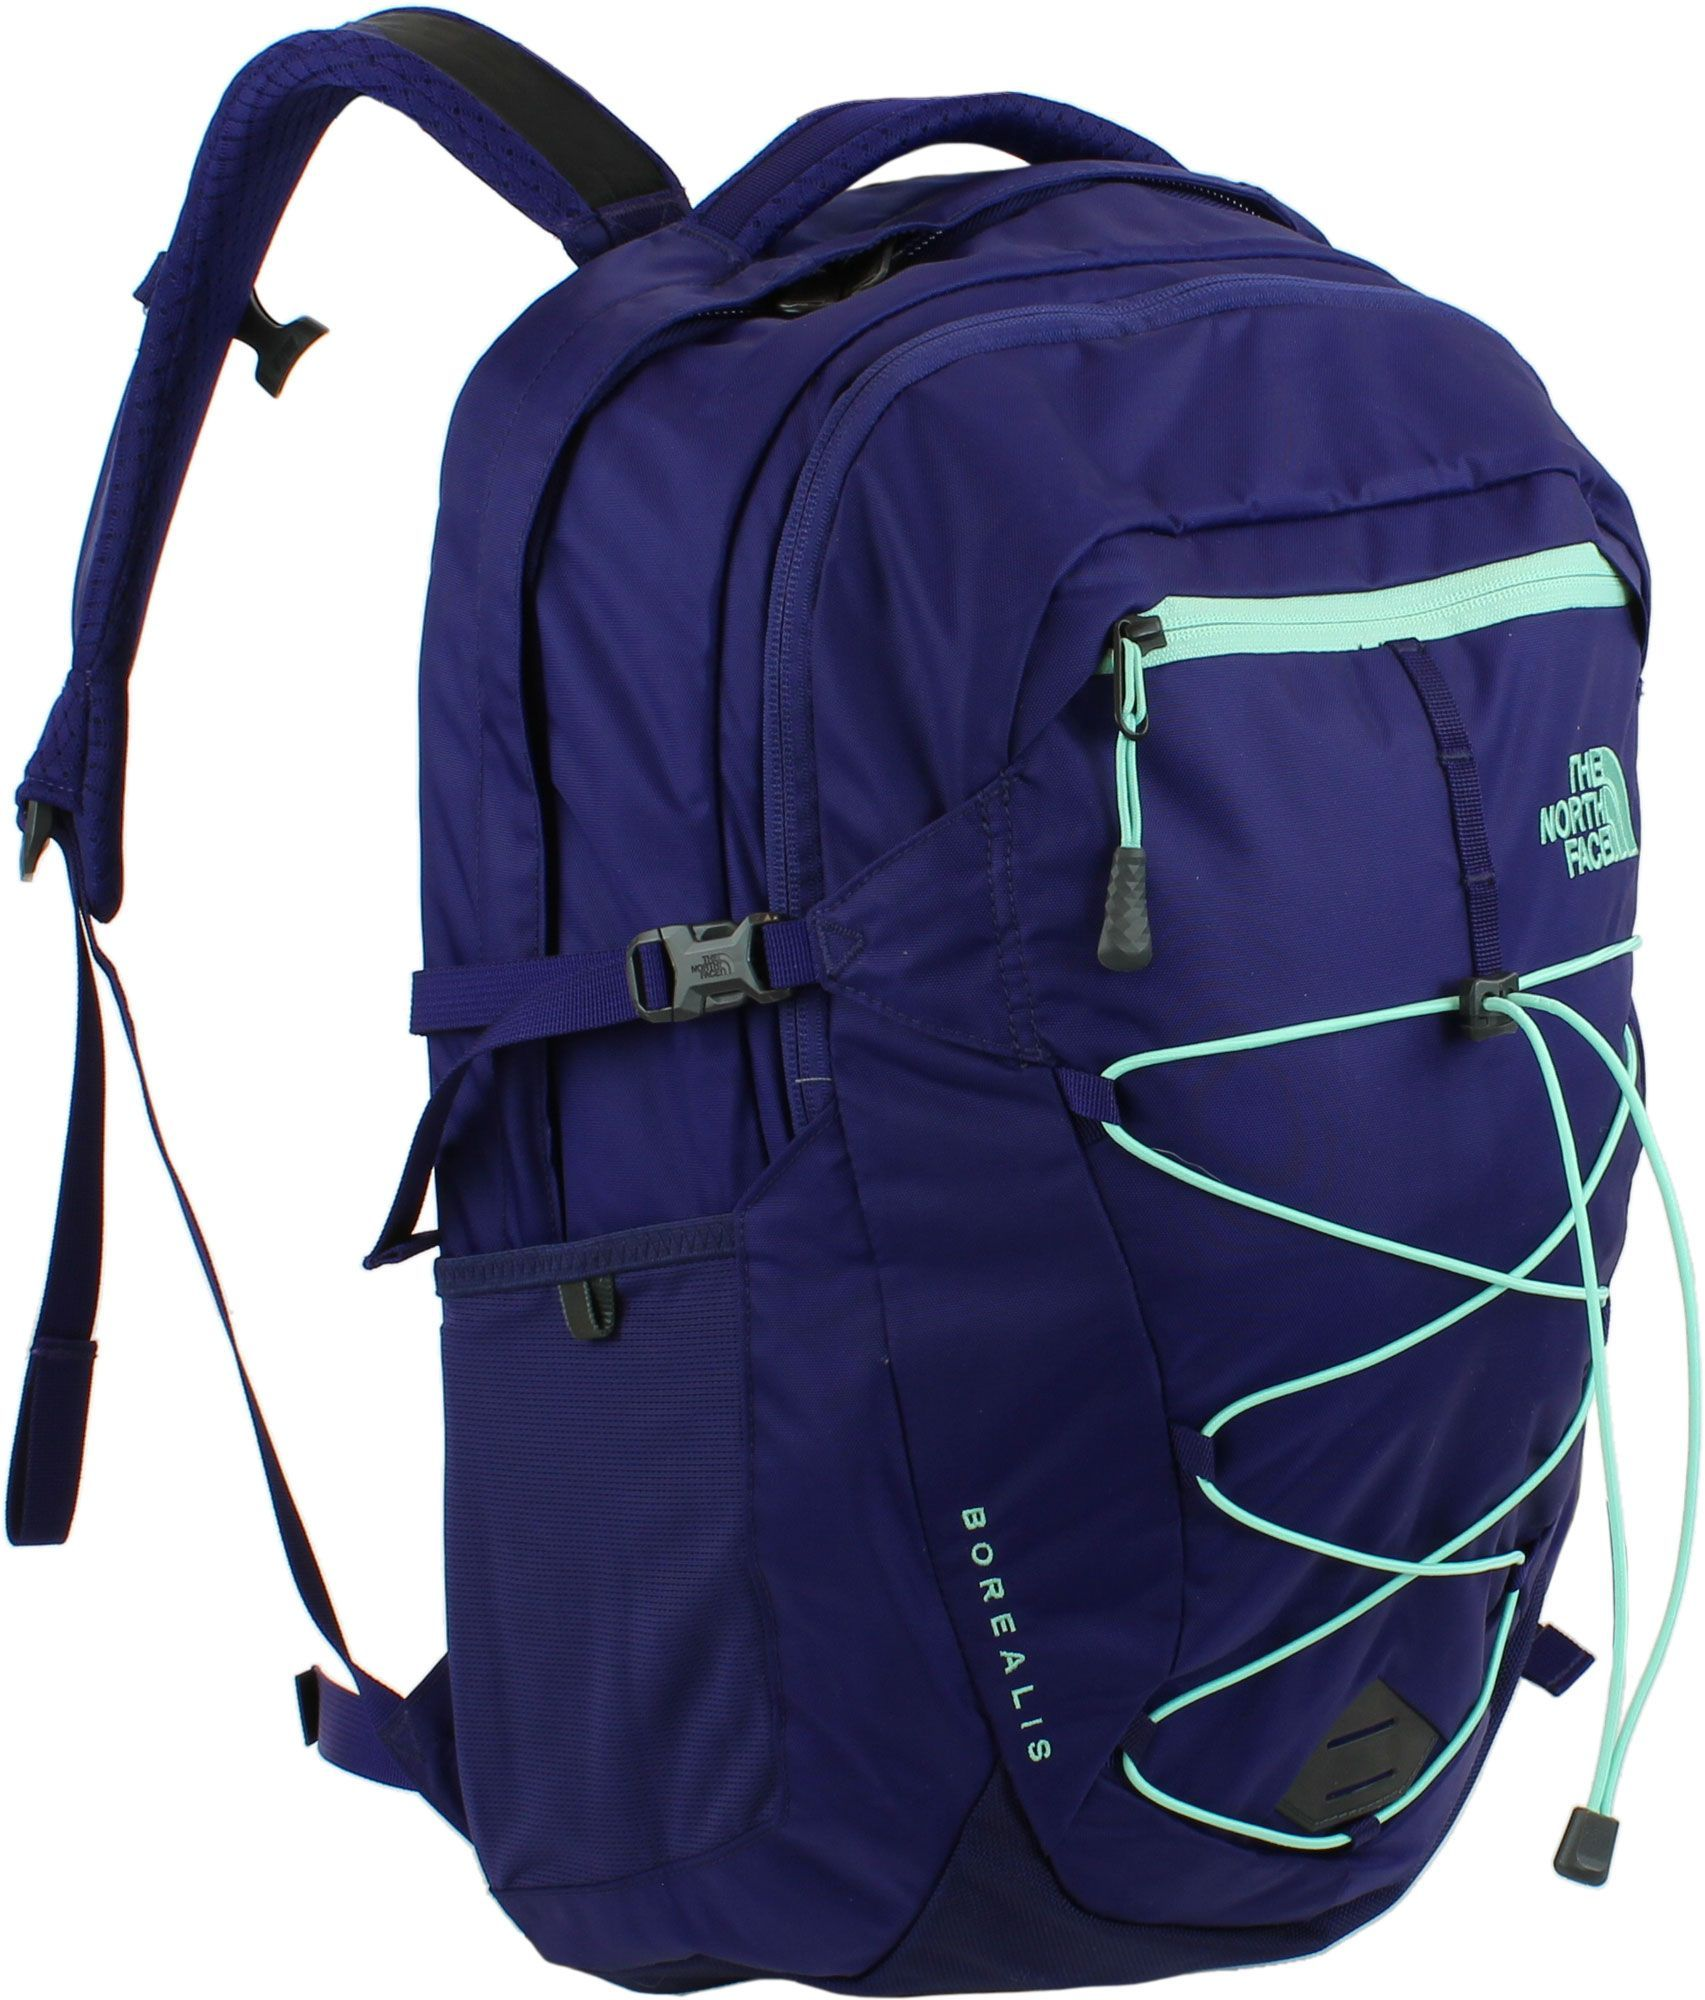 591f322f4e The North Face Women's Borealis Backpack | Products | North face ...